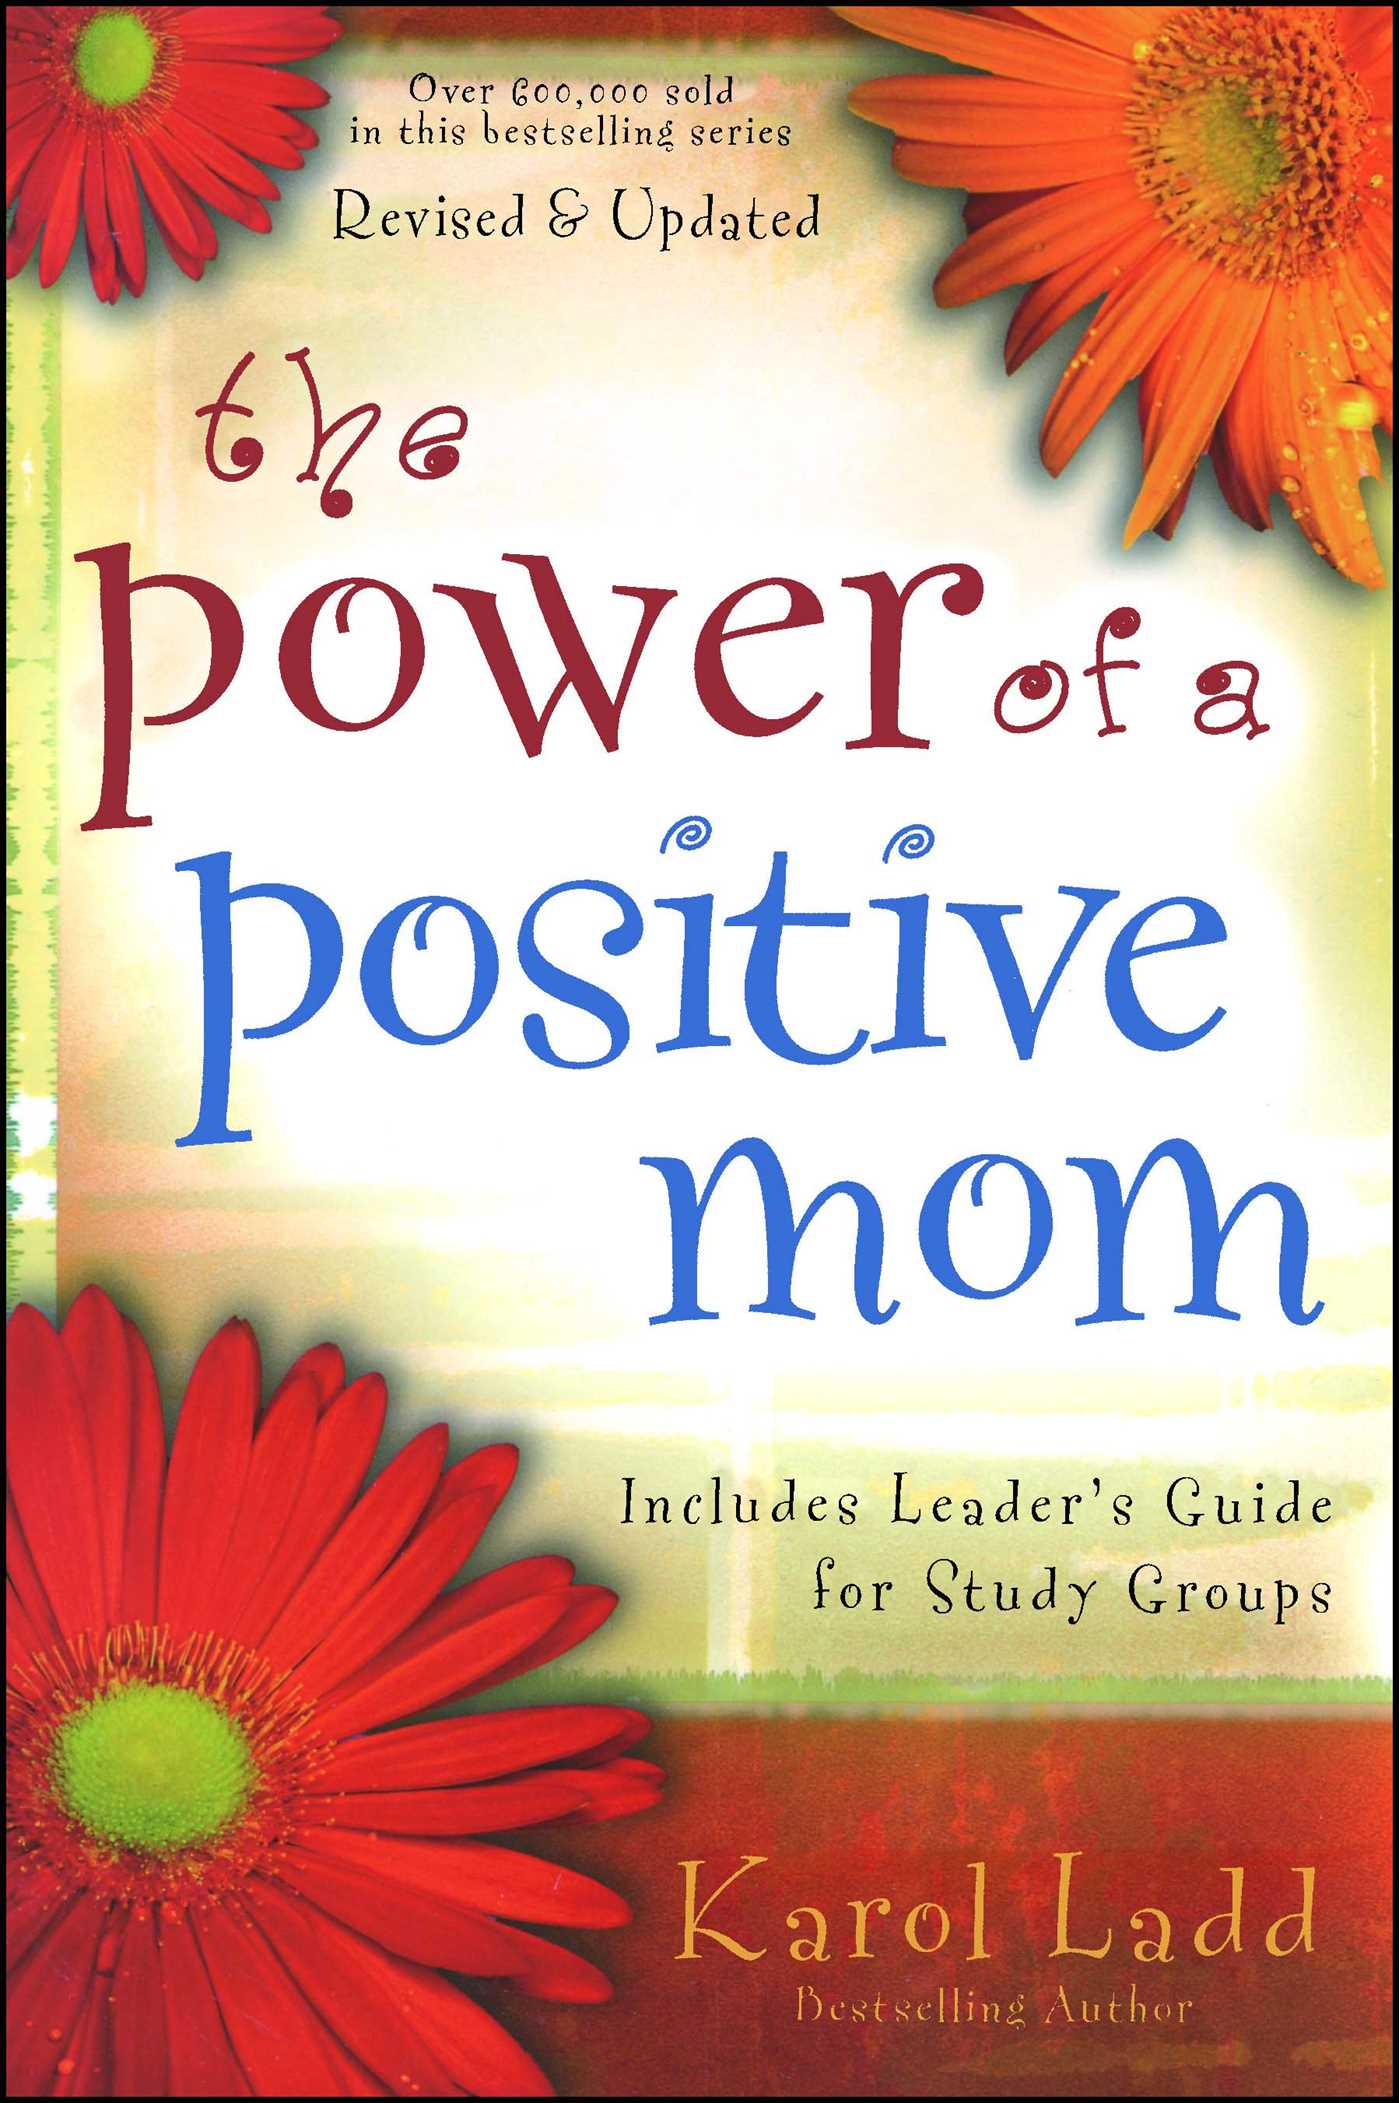 The power of a positive mom 9781416551218 hr